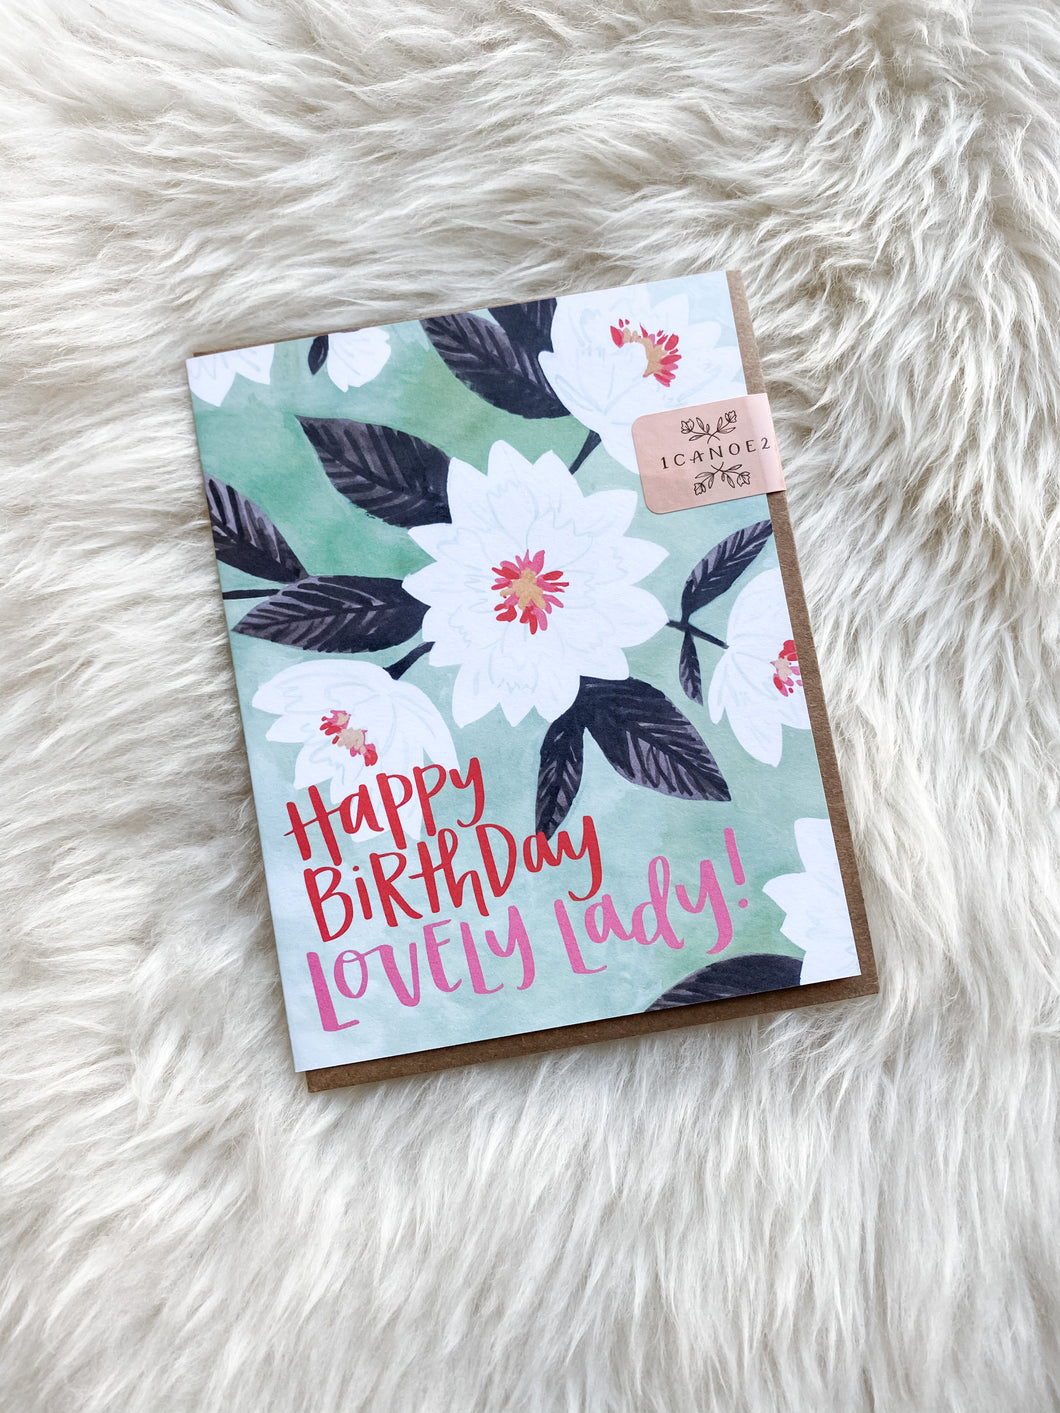 HAPPY BIRTHDAY LOVELY LADY CARD